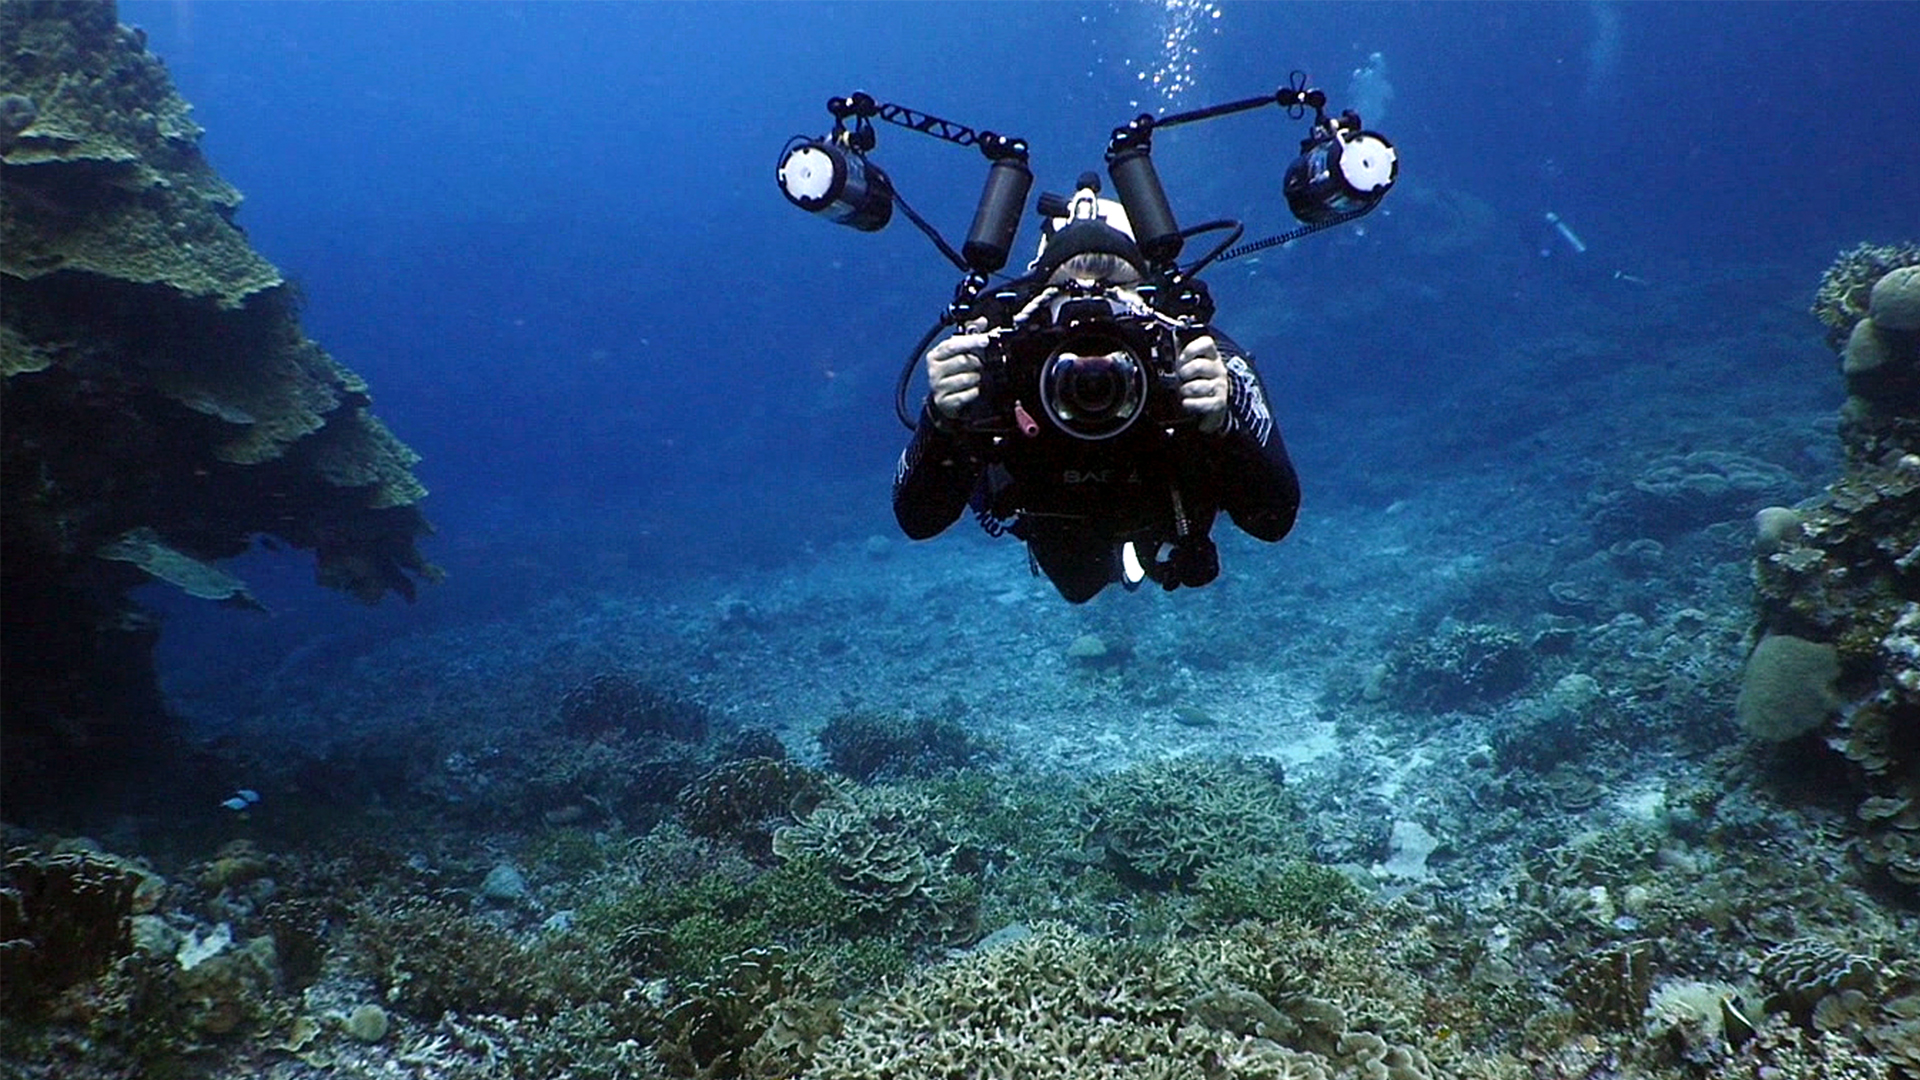 Underwater Photography: Wide Angle